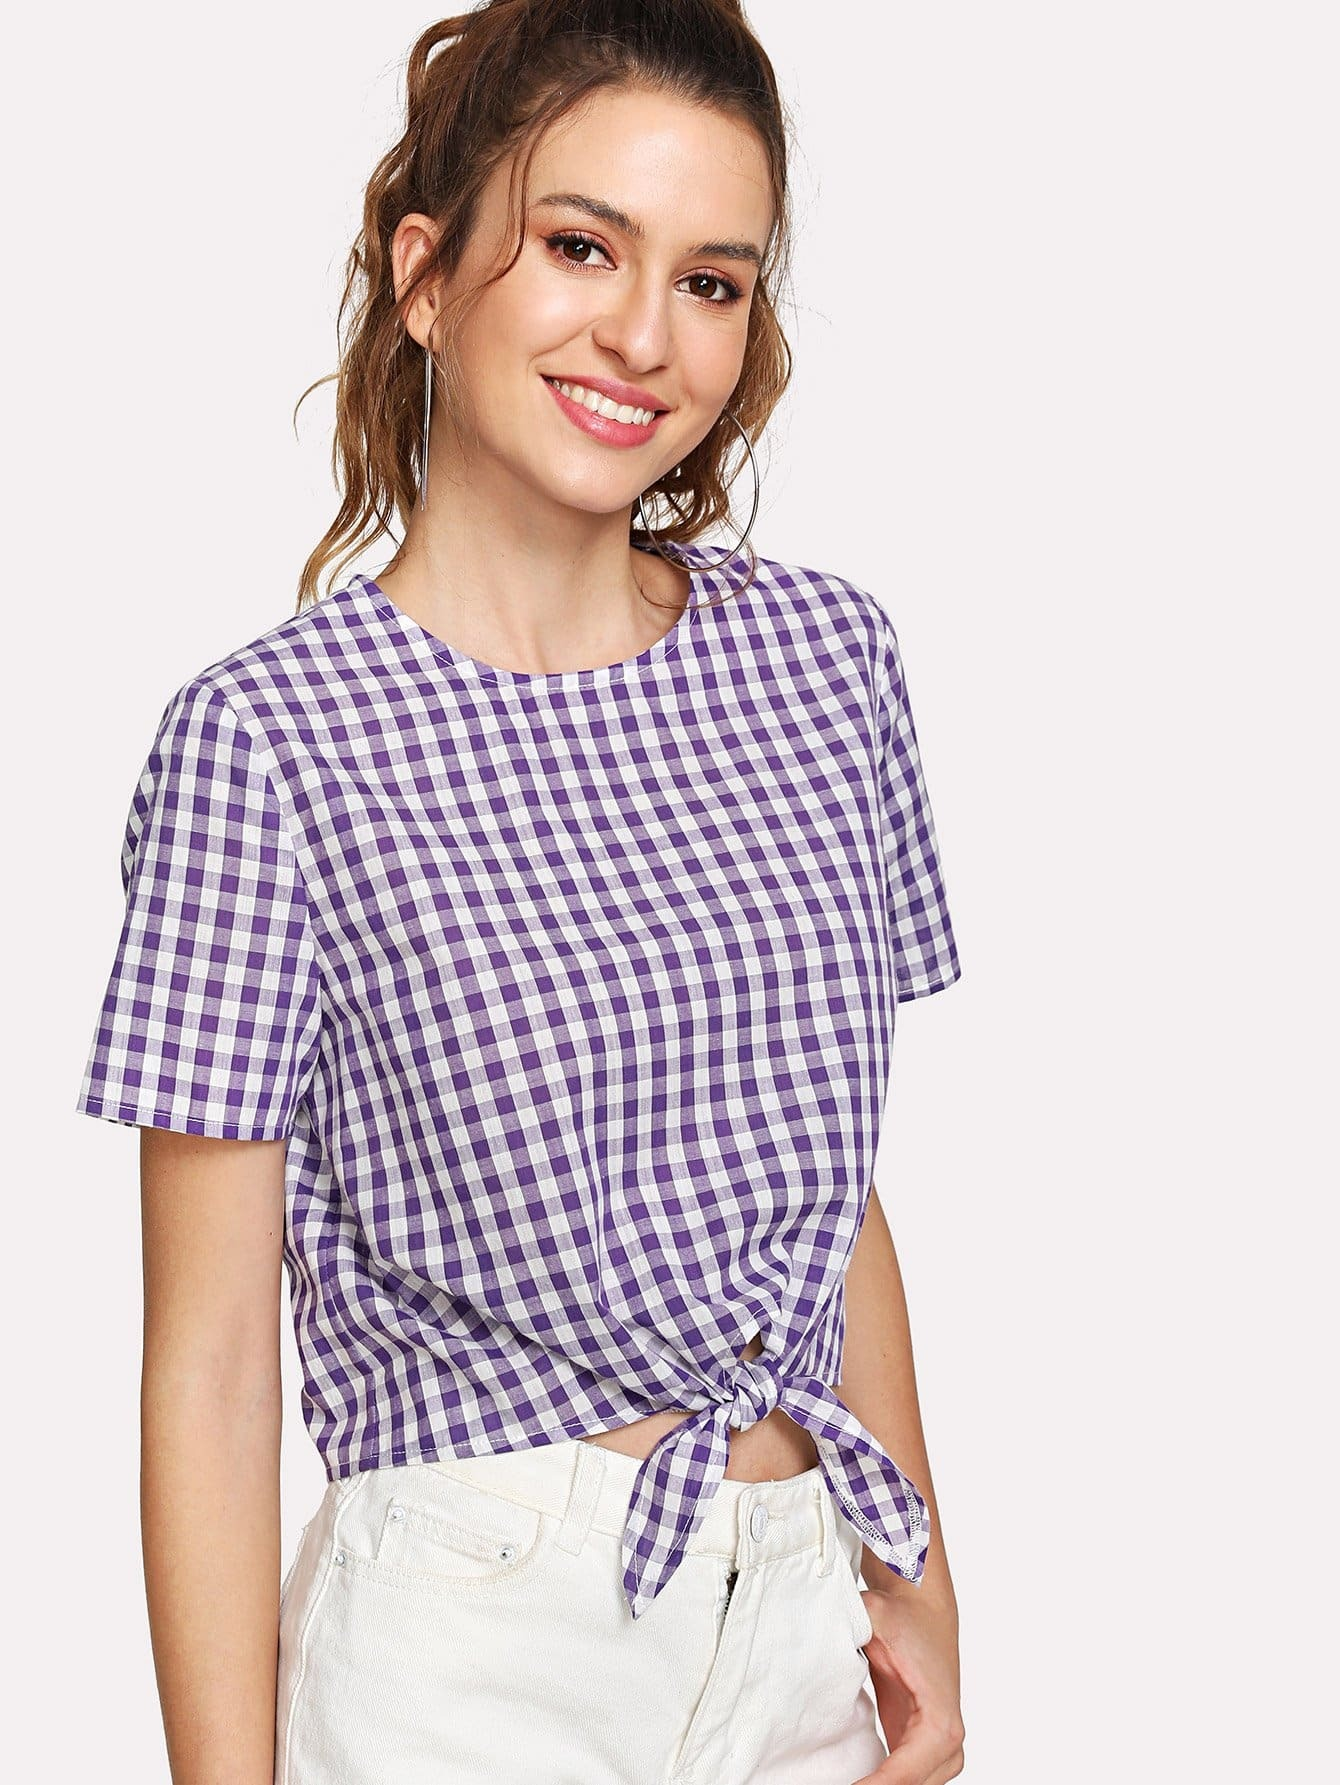 Knot Front Keyhole Back Plaid Top knot front keyhole back flounce sleeve striped top